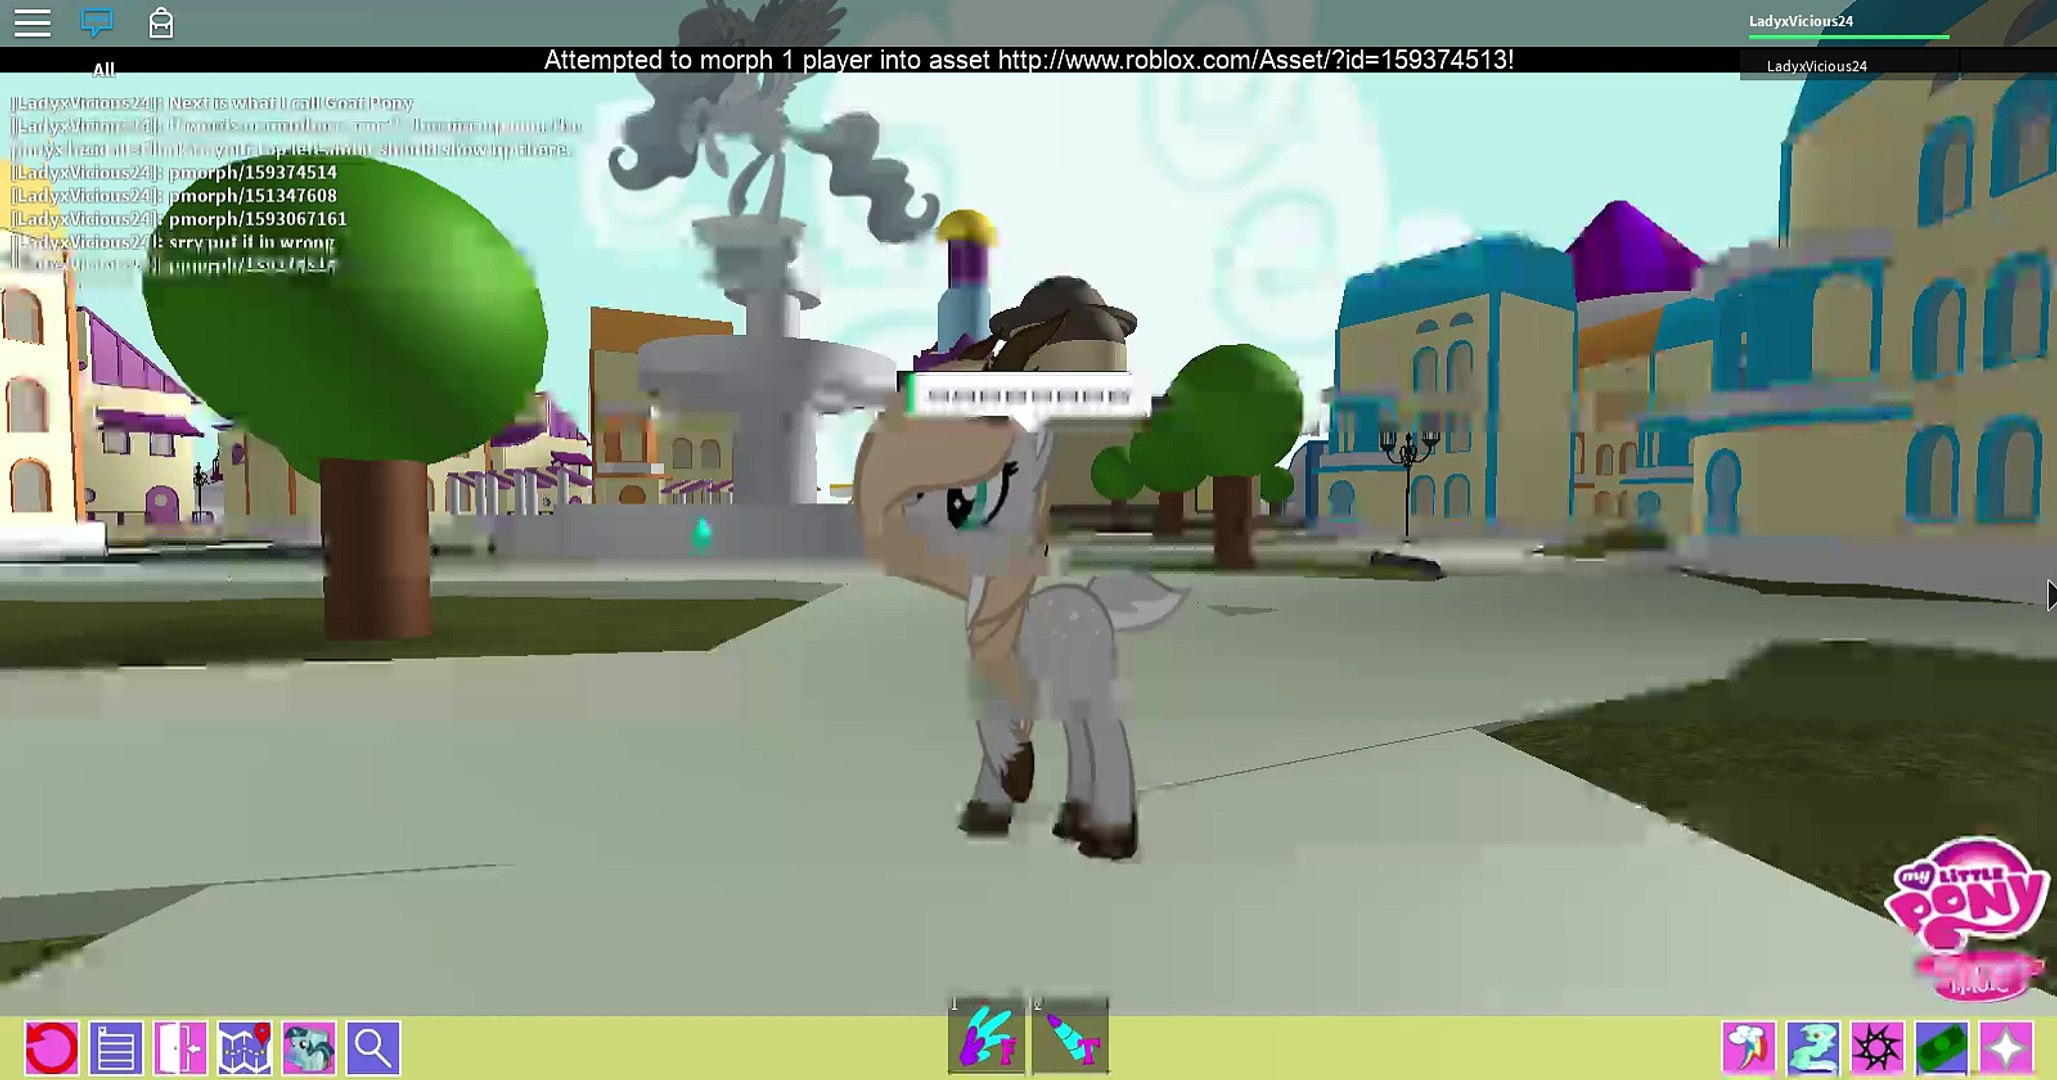 Morph Ids For Roblox Mlp Friendship Is Magic Morph Codes On Roblox Video Dailymotion